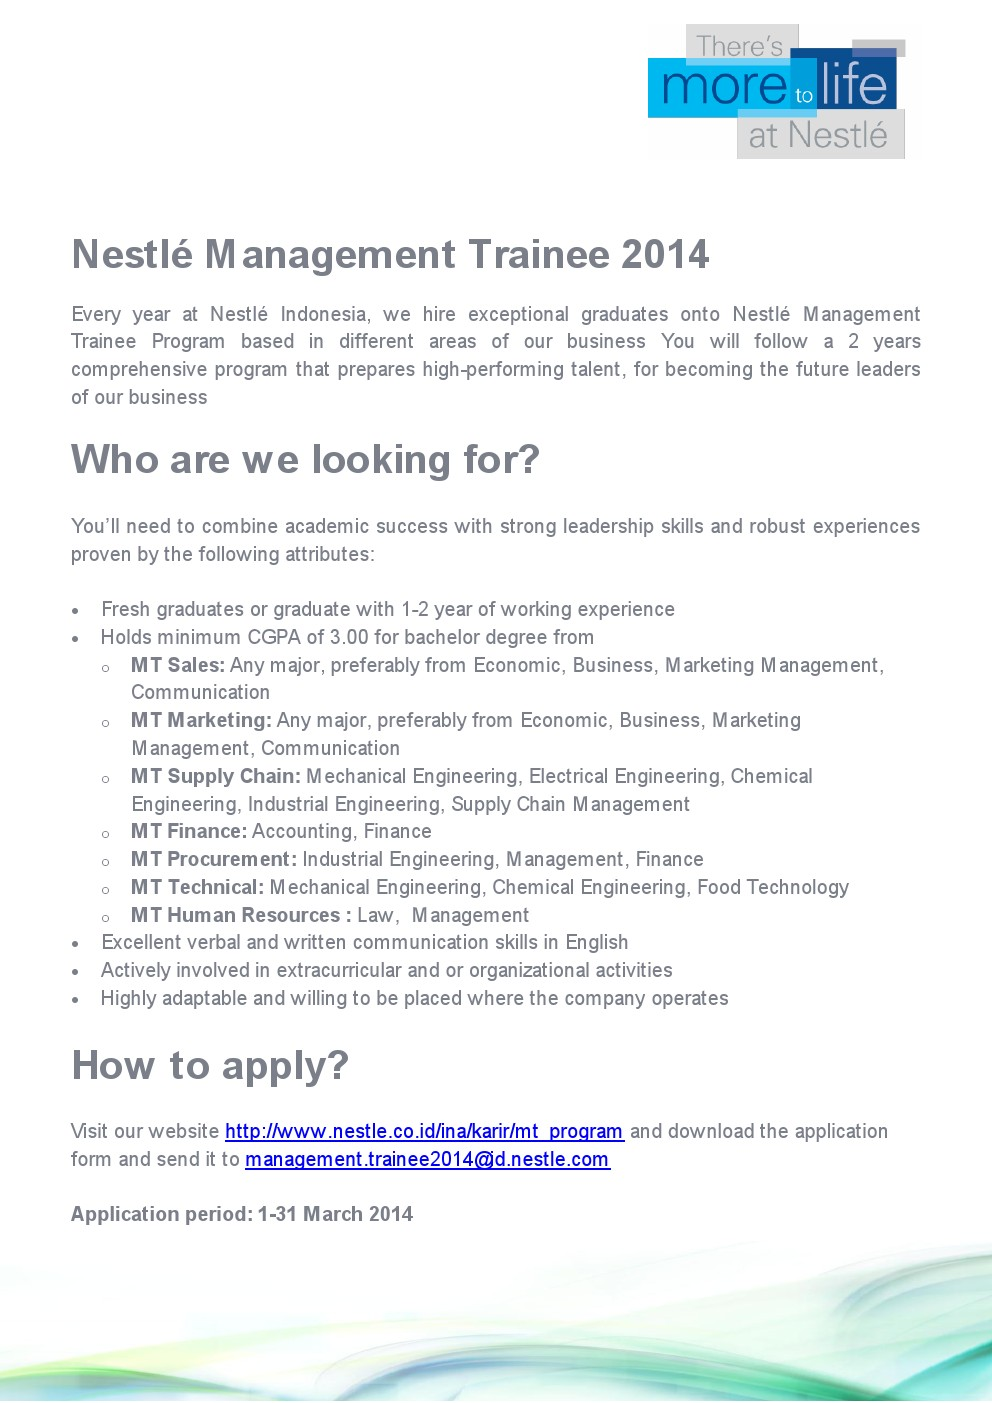 management trainee nestle 45 nestlé trainee jobs search job openings, see if they fit - company salaries, reviews, and more posted by nestlé employees.